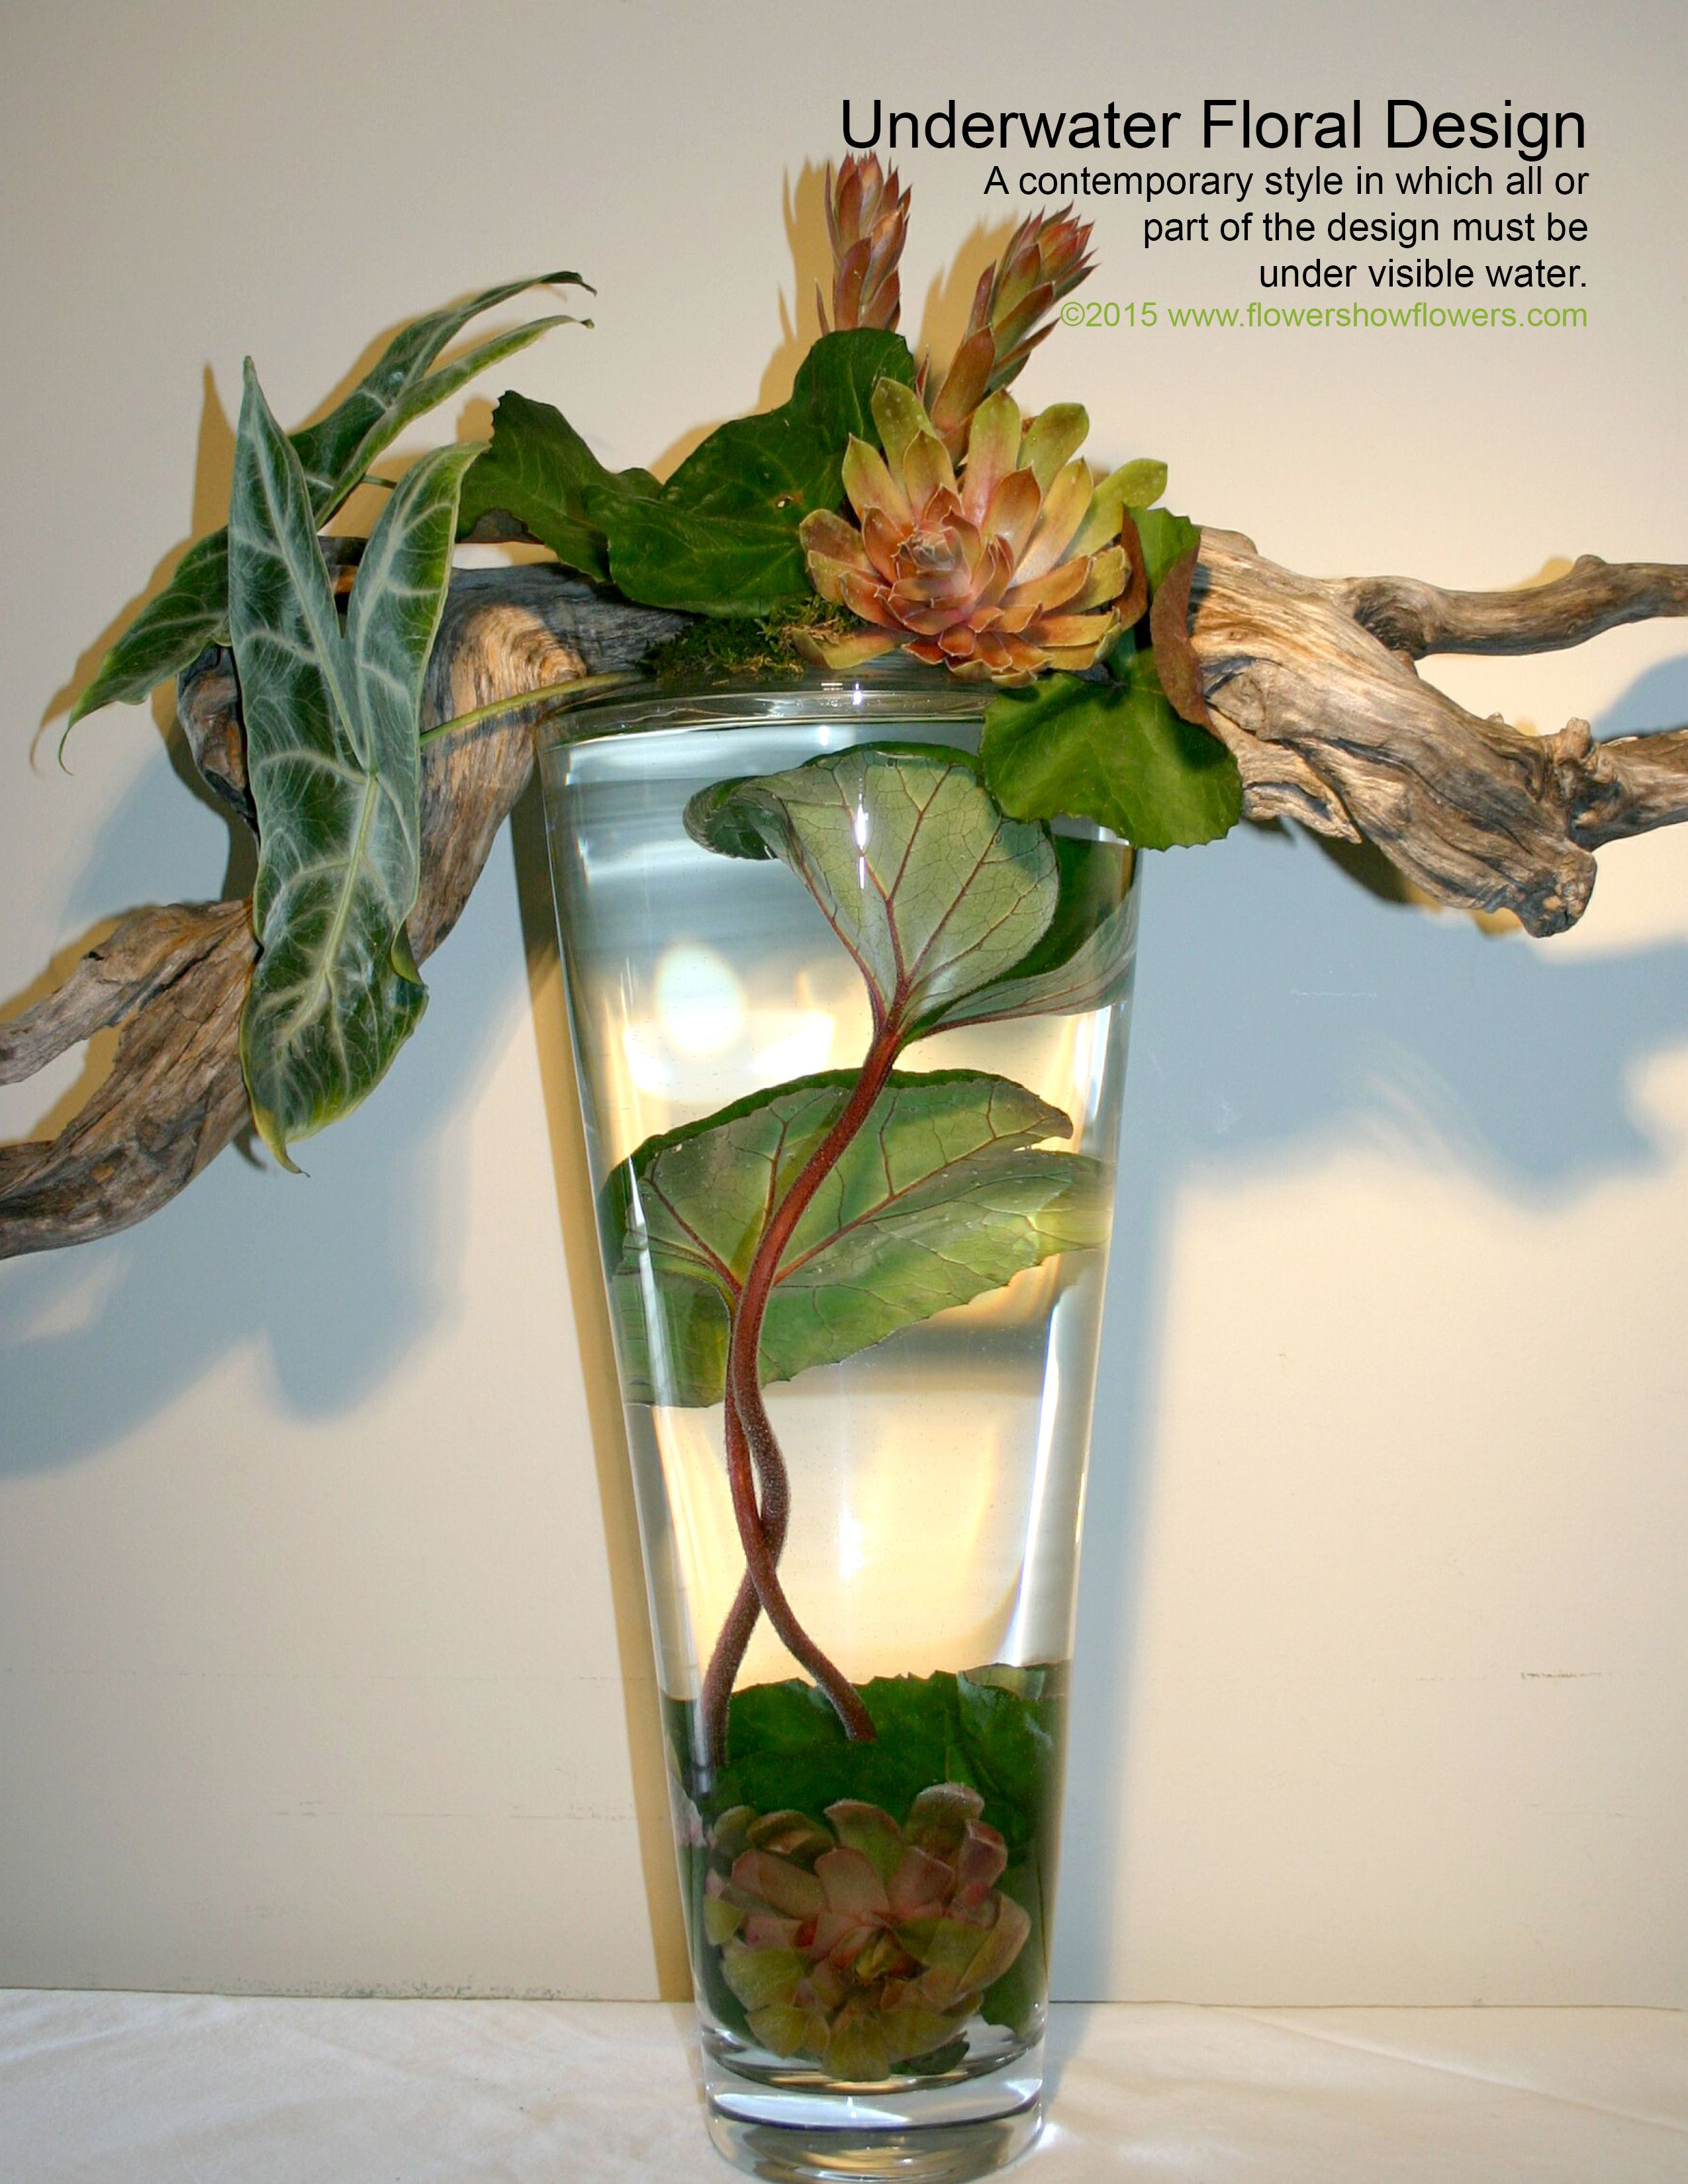 UNDERWATER FLORAL DESIGN From